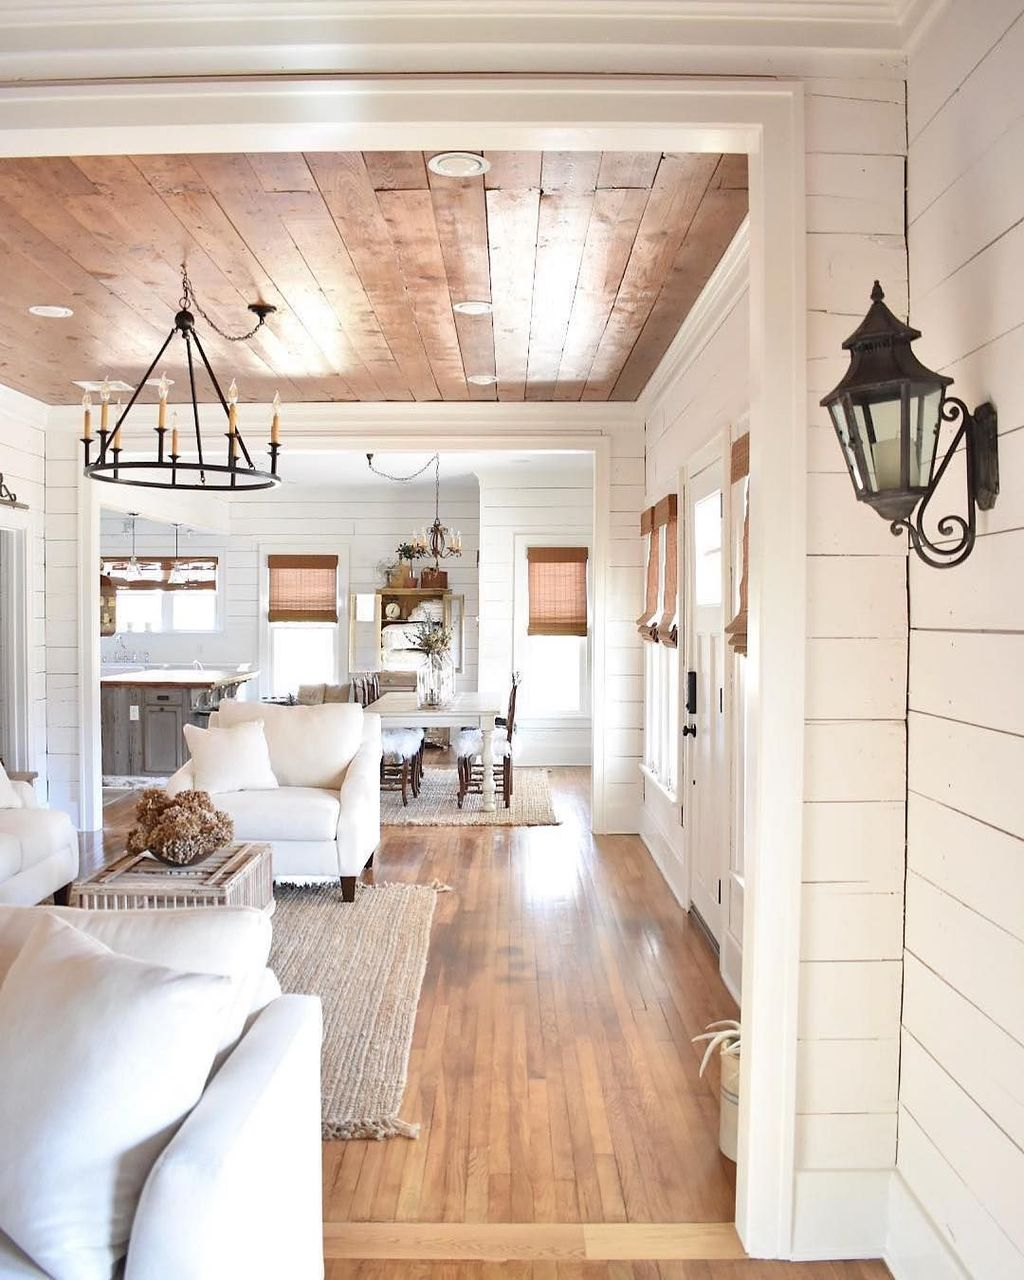 The Best Ideas To Decorate Interior Design With Farmhouse Style 25